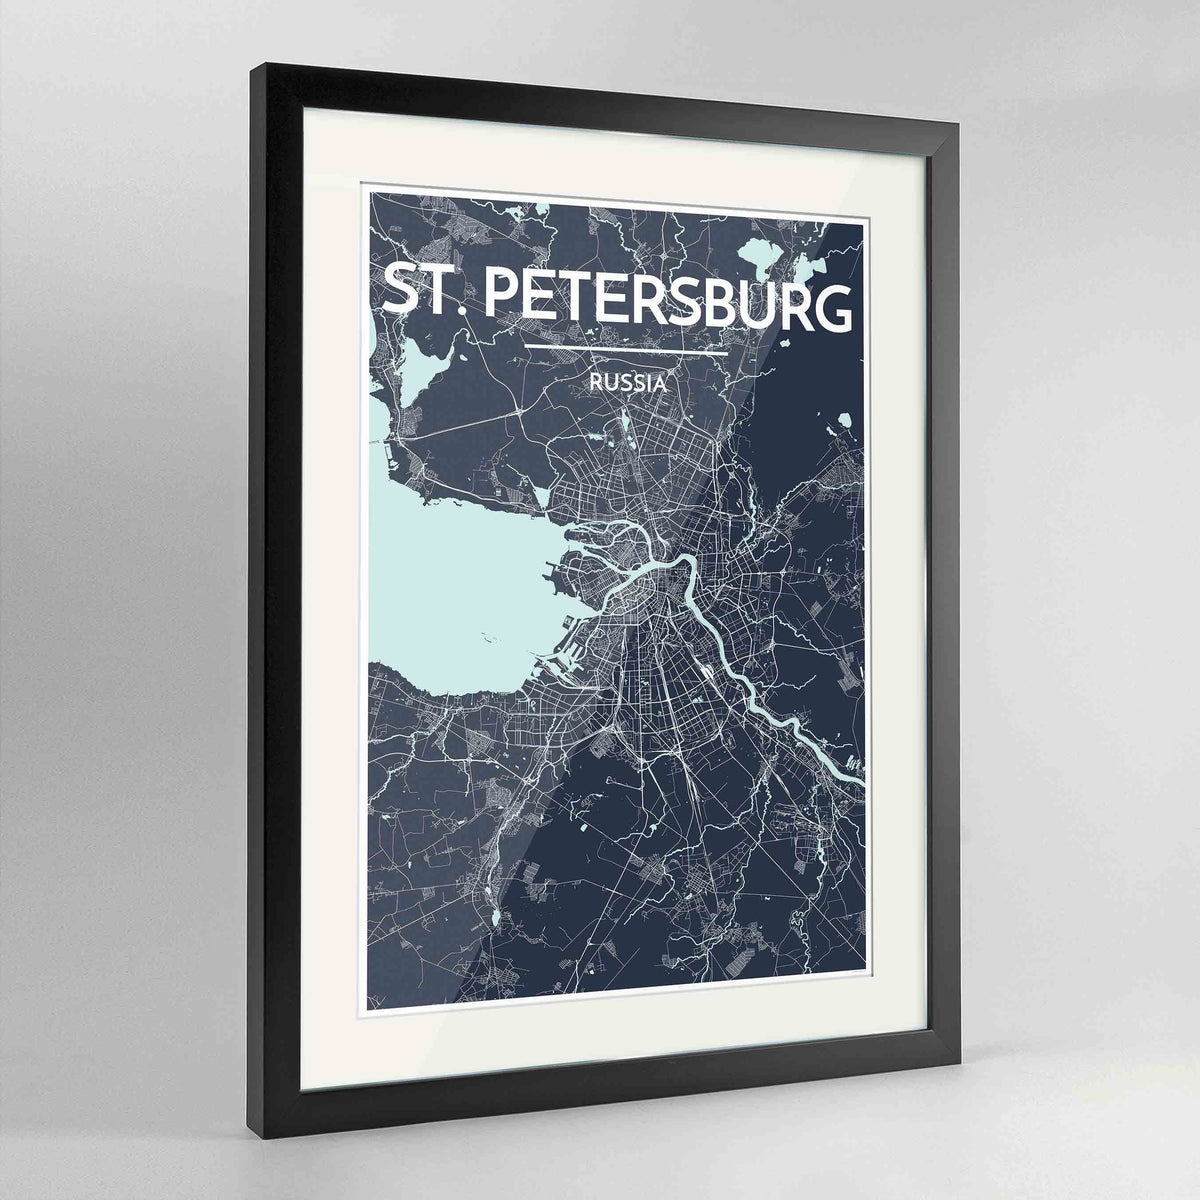 "Framed St Petersburg 24x36"" Contemporary Black frame Point Two Design Group"